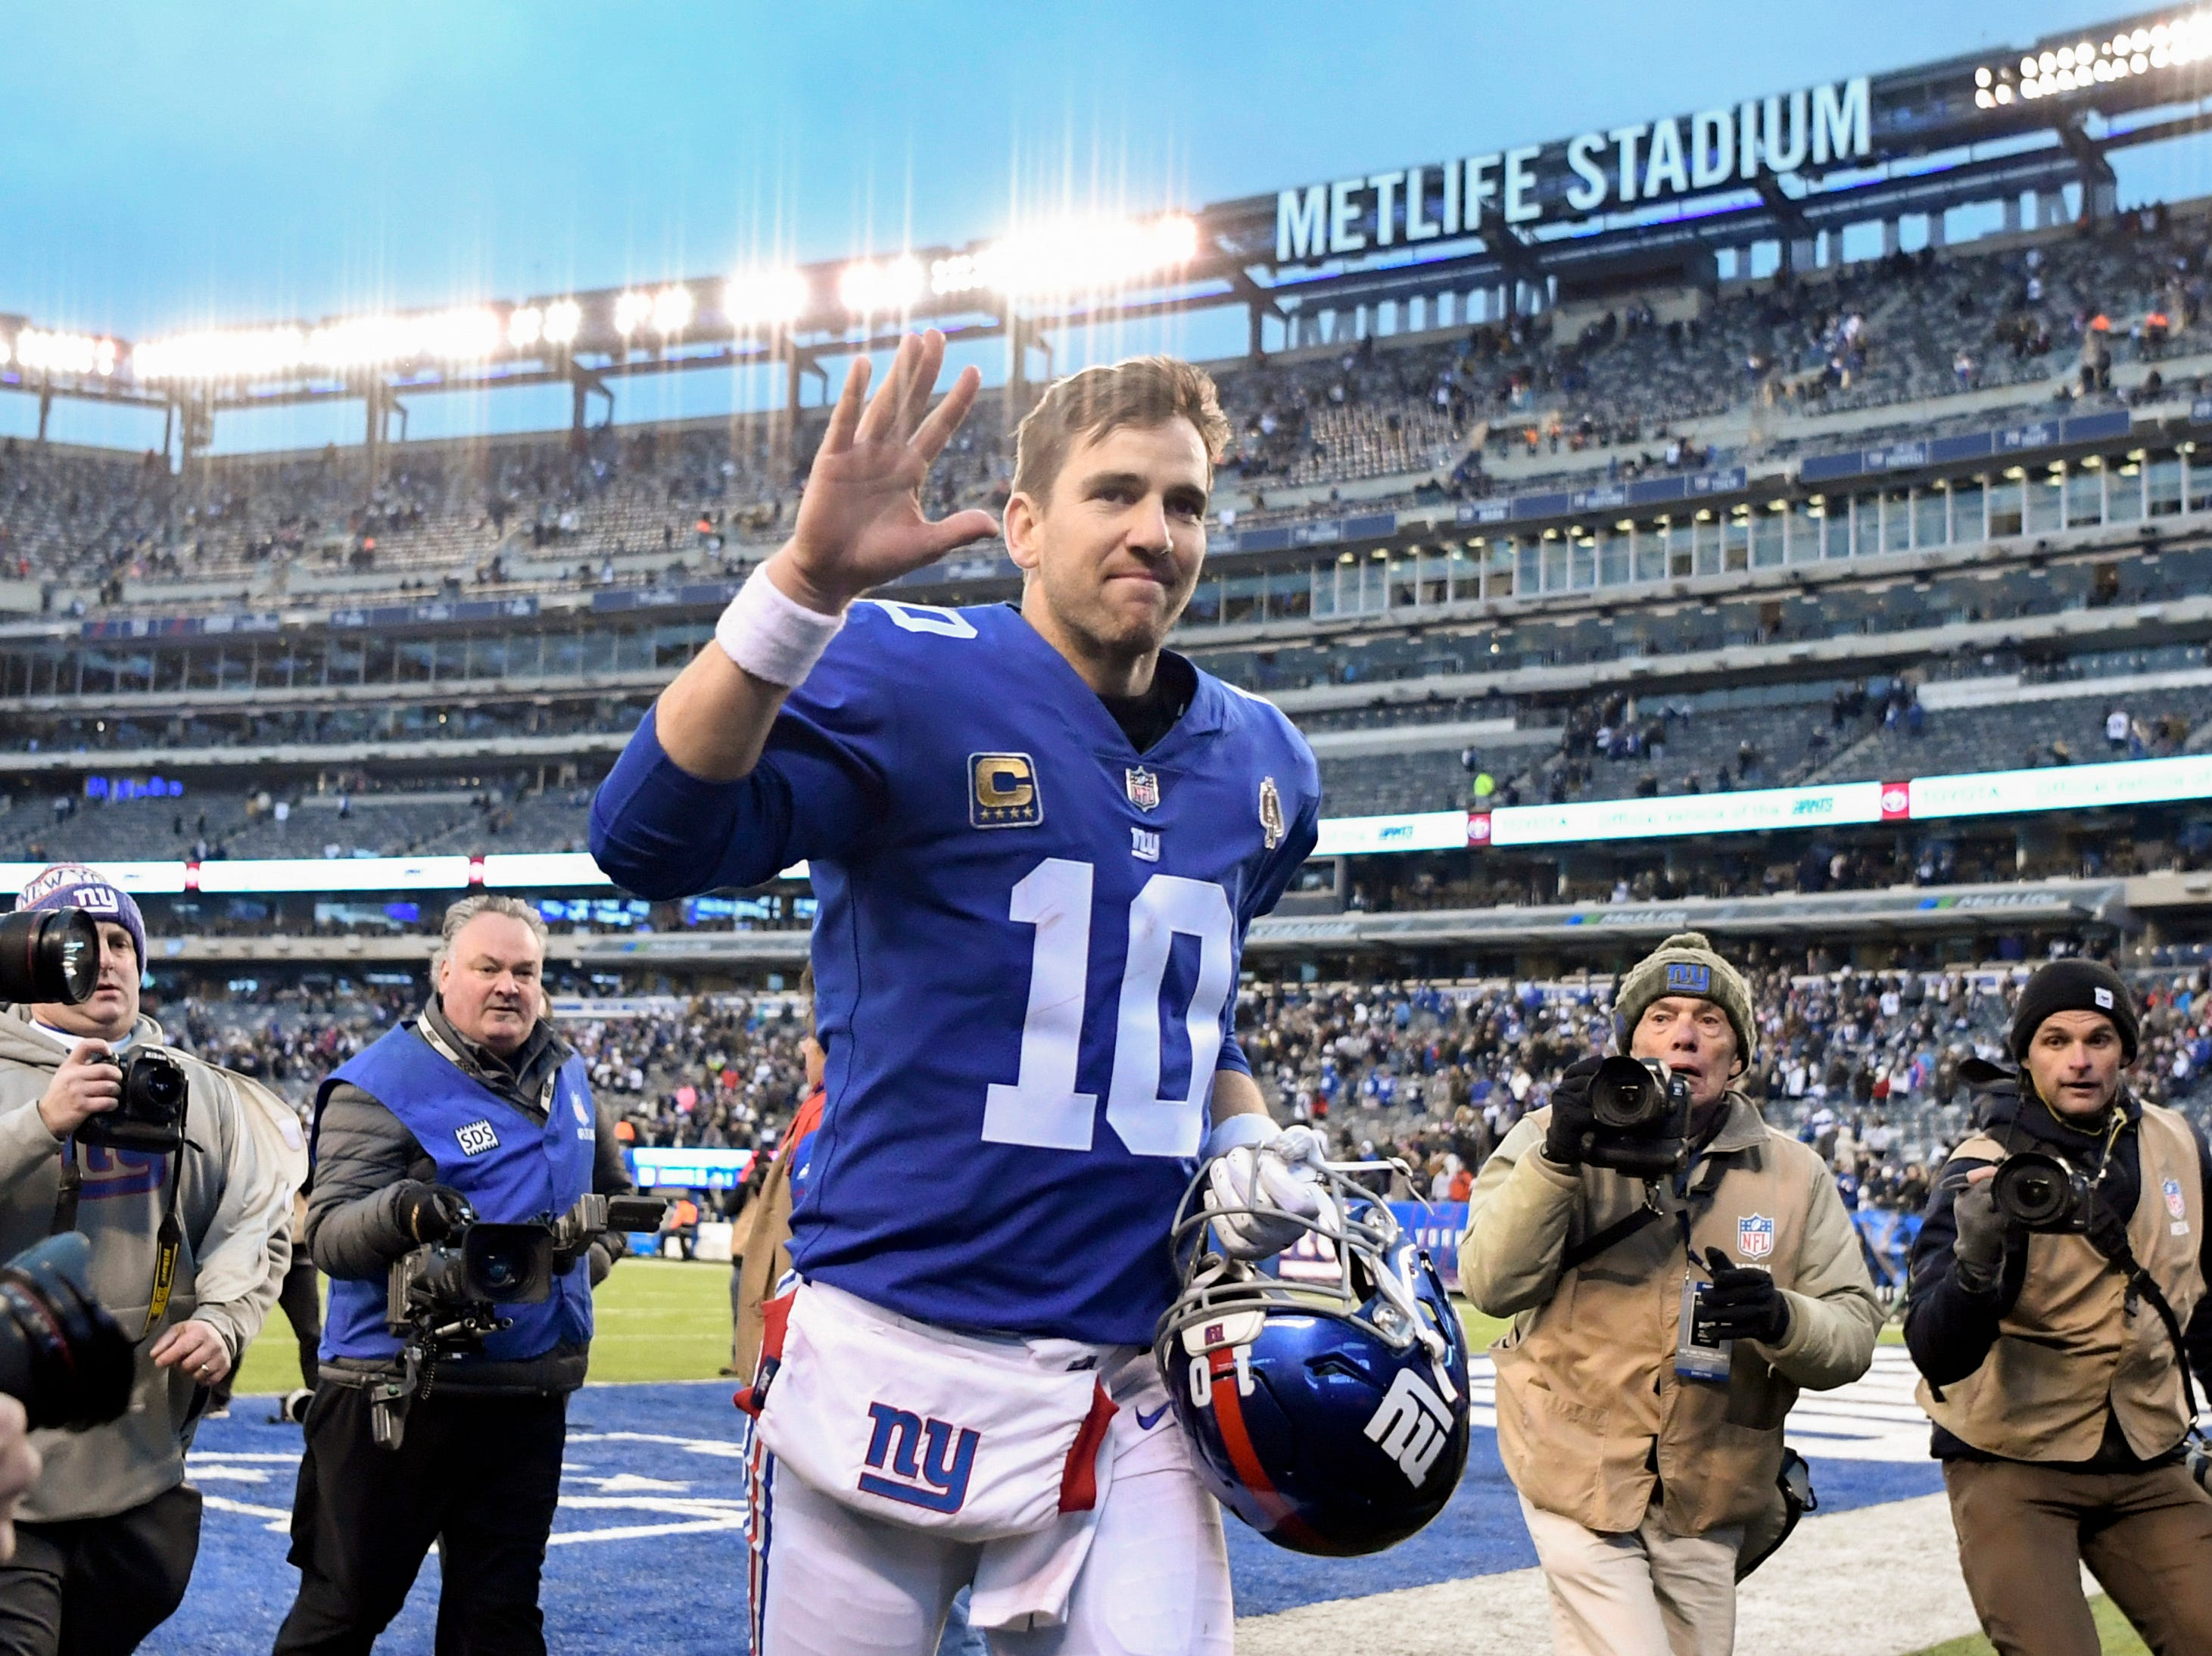 New York Giants quarterback Eli Manning (10) waves to fans as he leaves the field. The New York Giants lose to the Dallas Cowboys 36-35 on Sunday, Dec. 30, 2018, in East Rutherford.